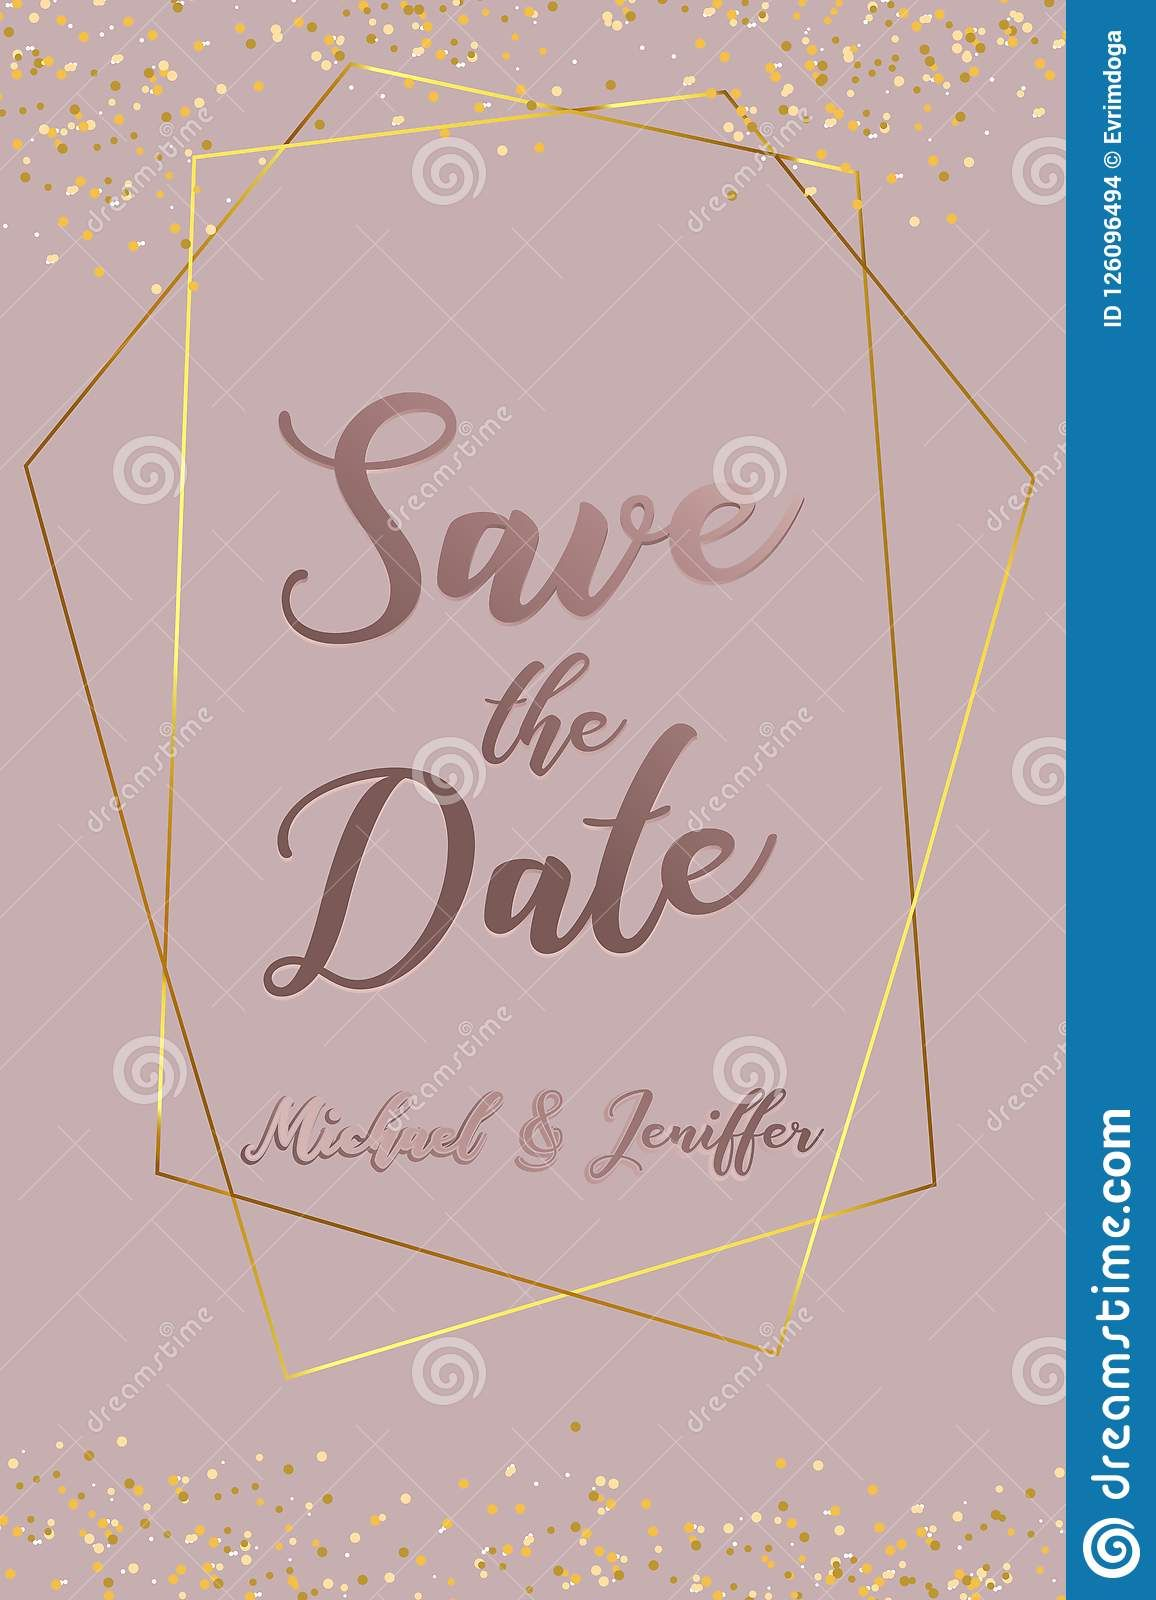 Wedding Invitation Thank You Card Save The Date Card In Save The Date Banner Template Thank You Card Template Banner Template Free Business Card Templates